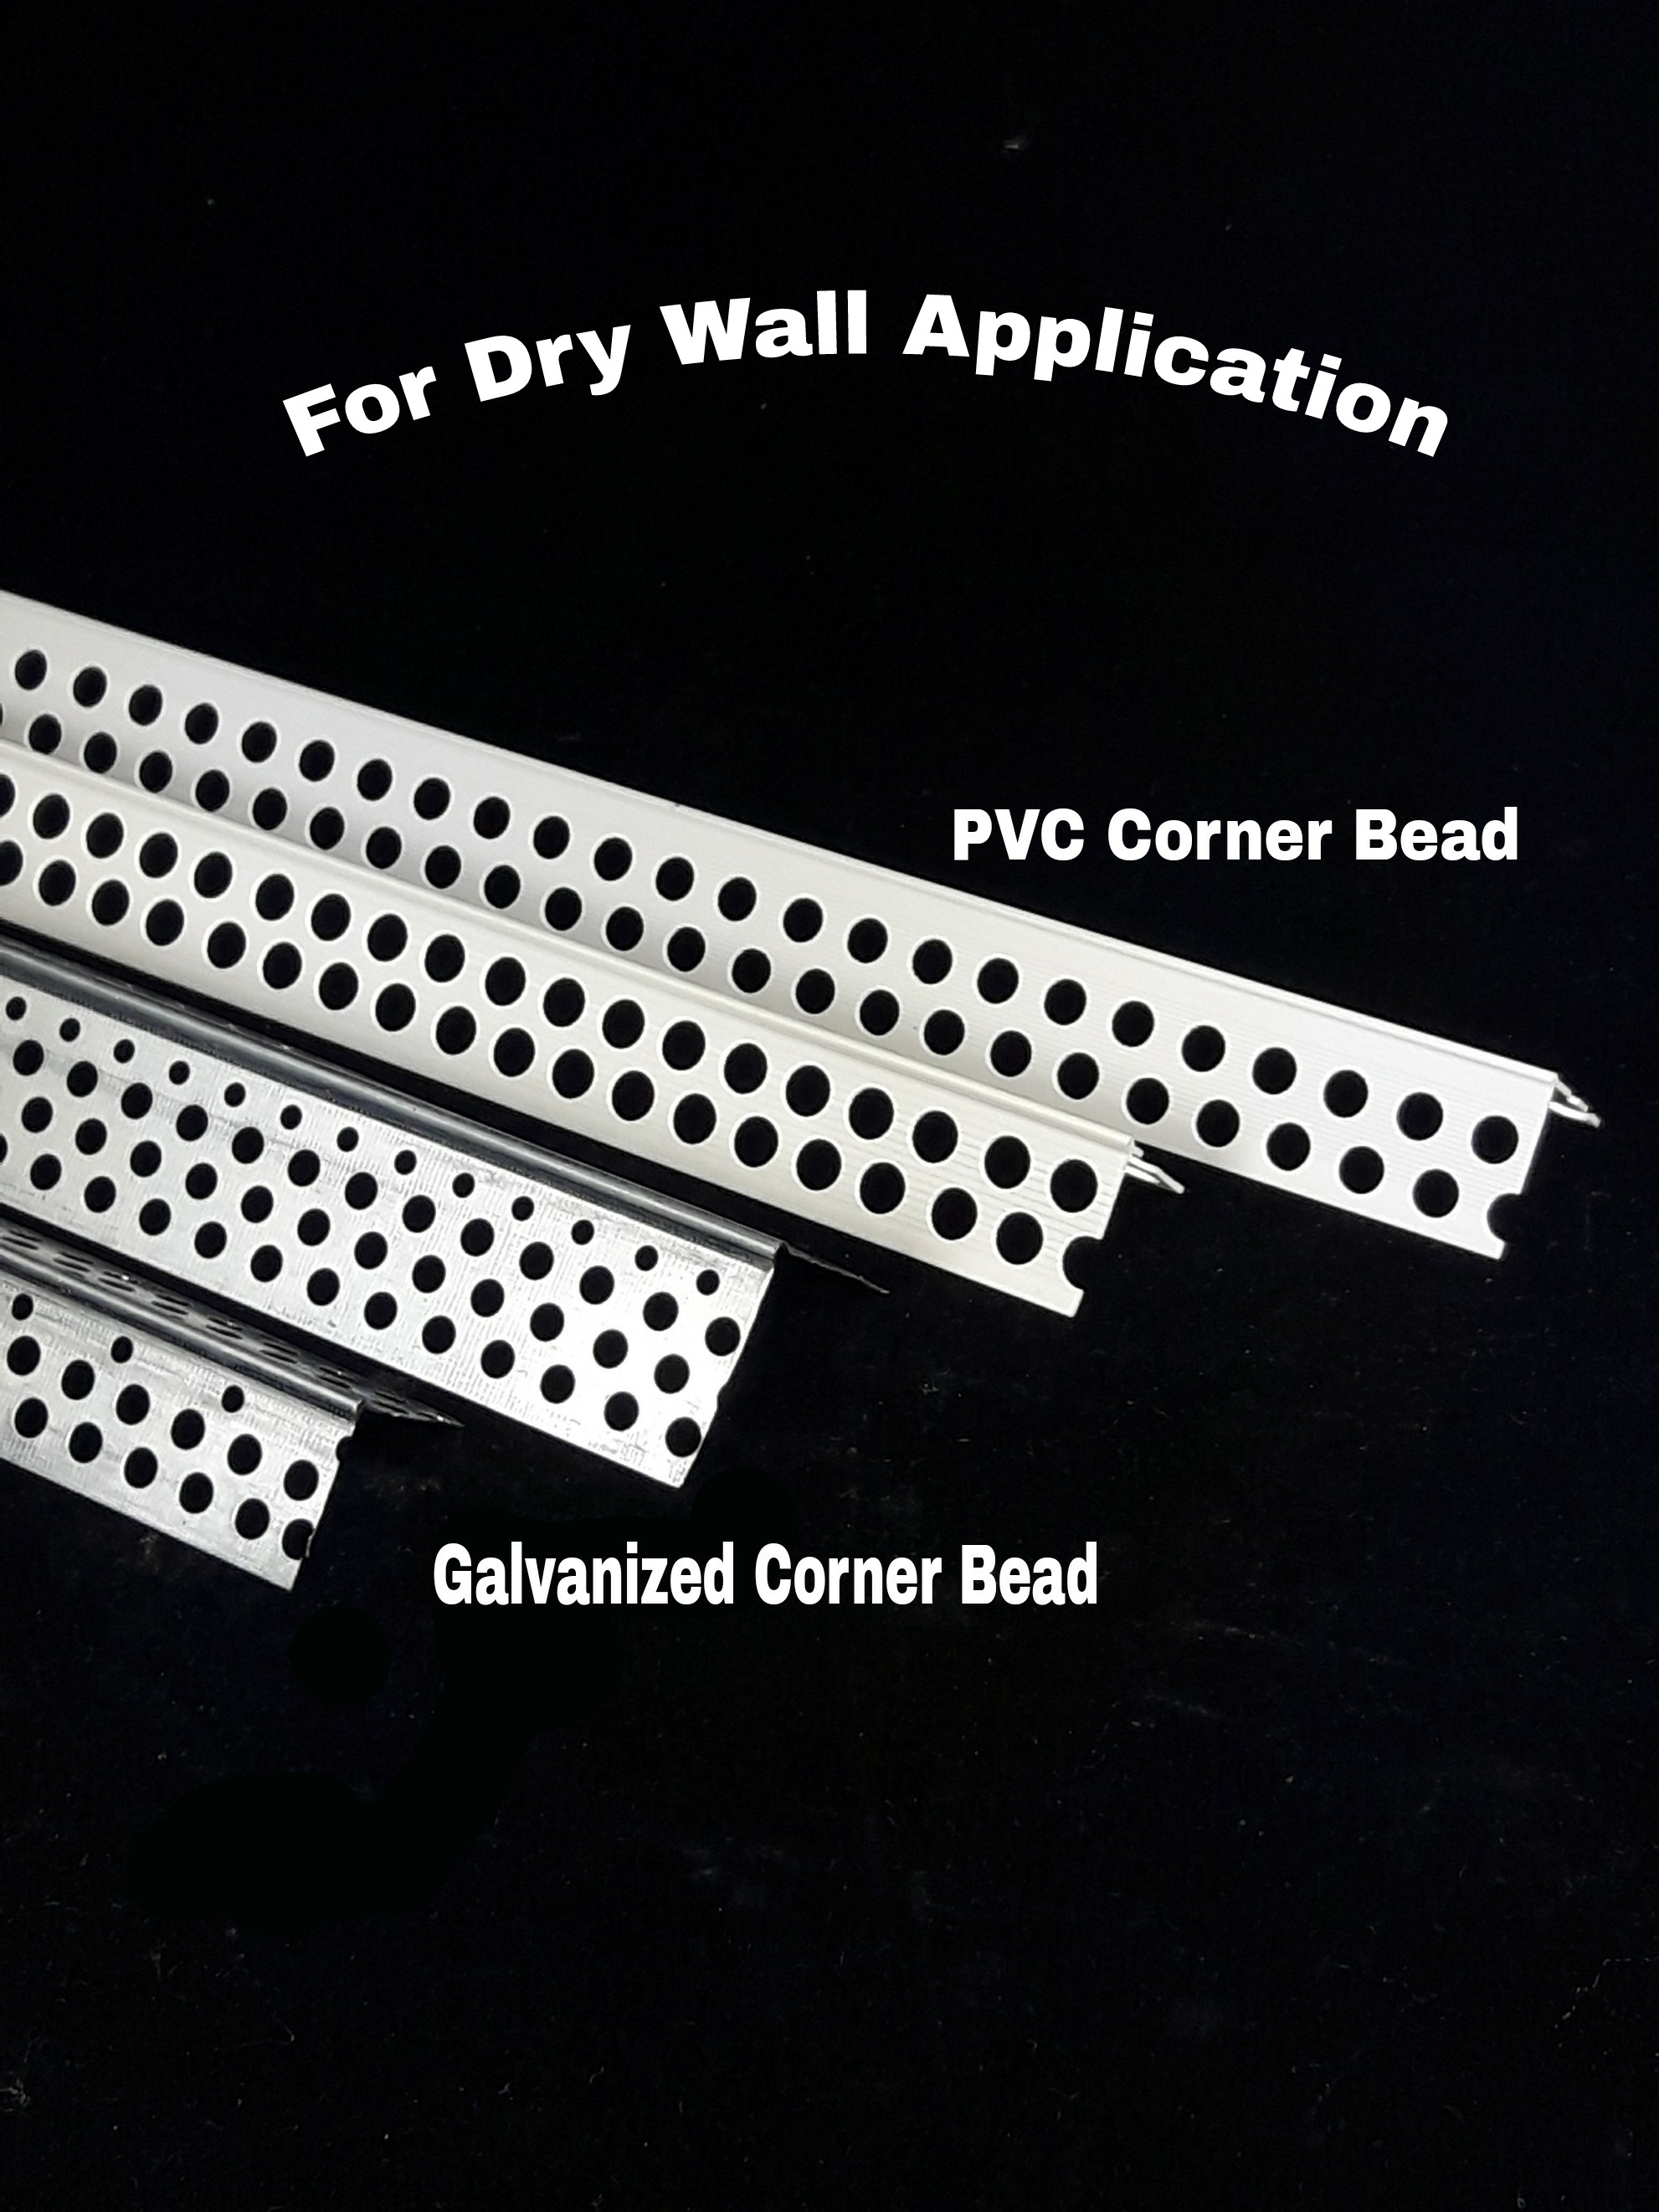 DRY WALL